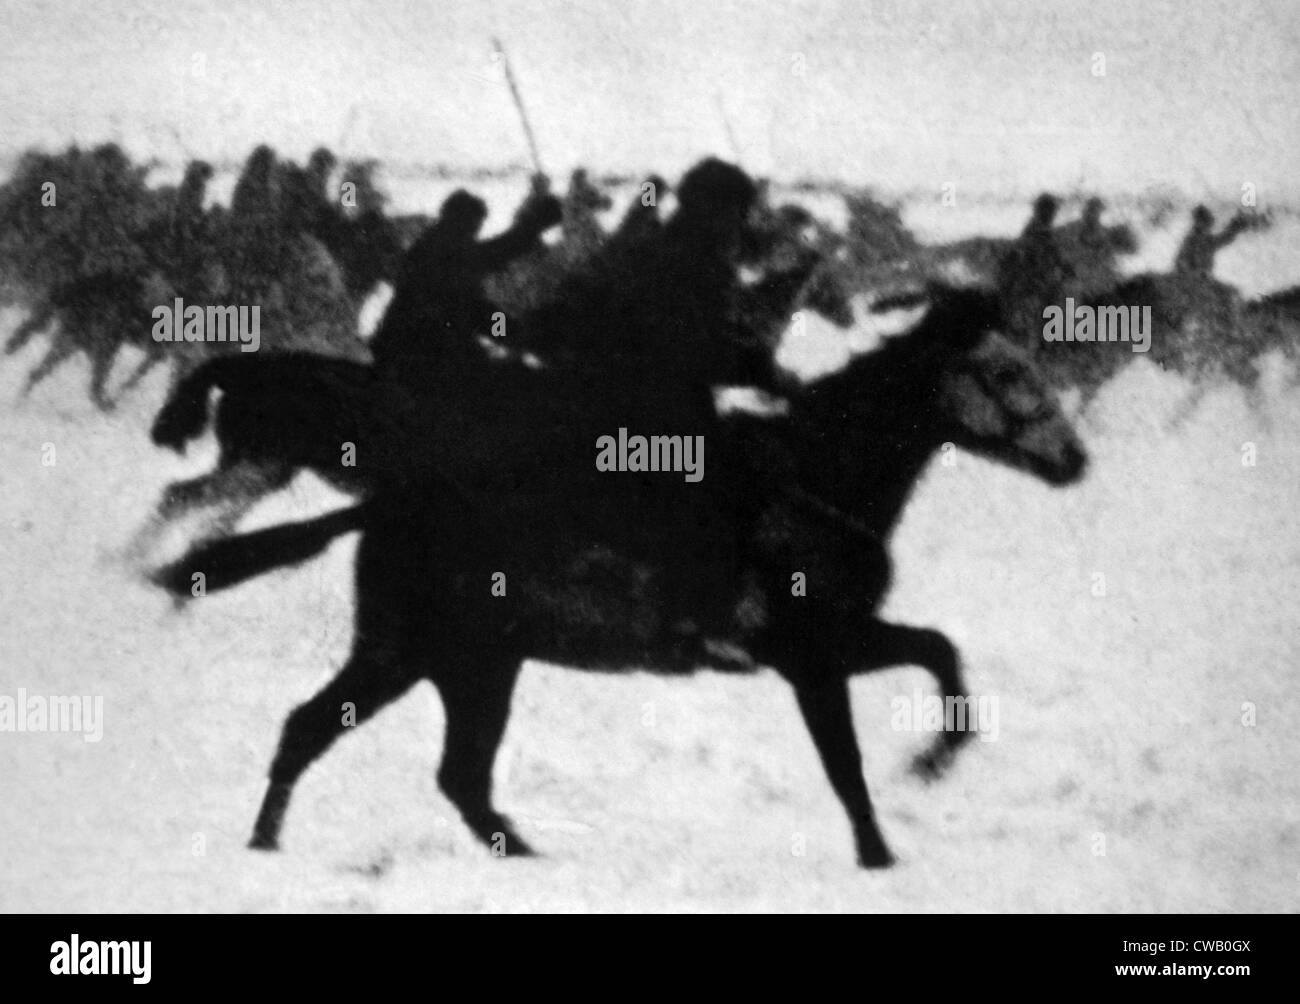 World War II, Russian cavalry in a winter offensive, 1942. - Stock Image